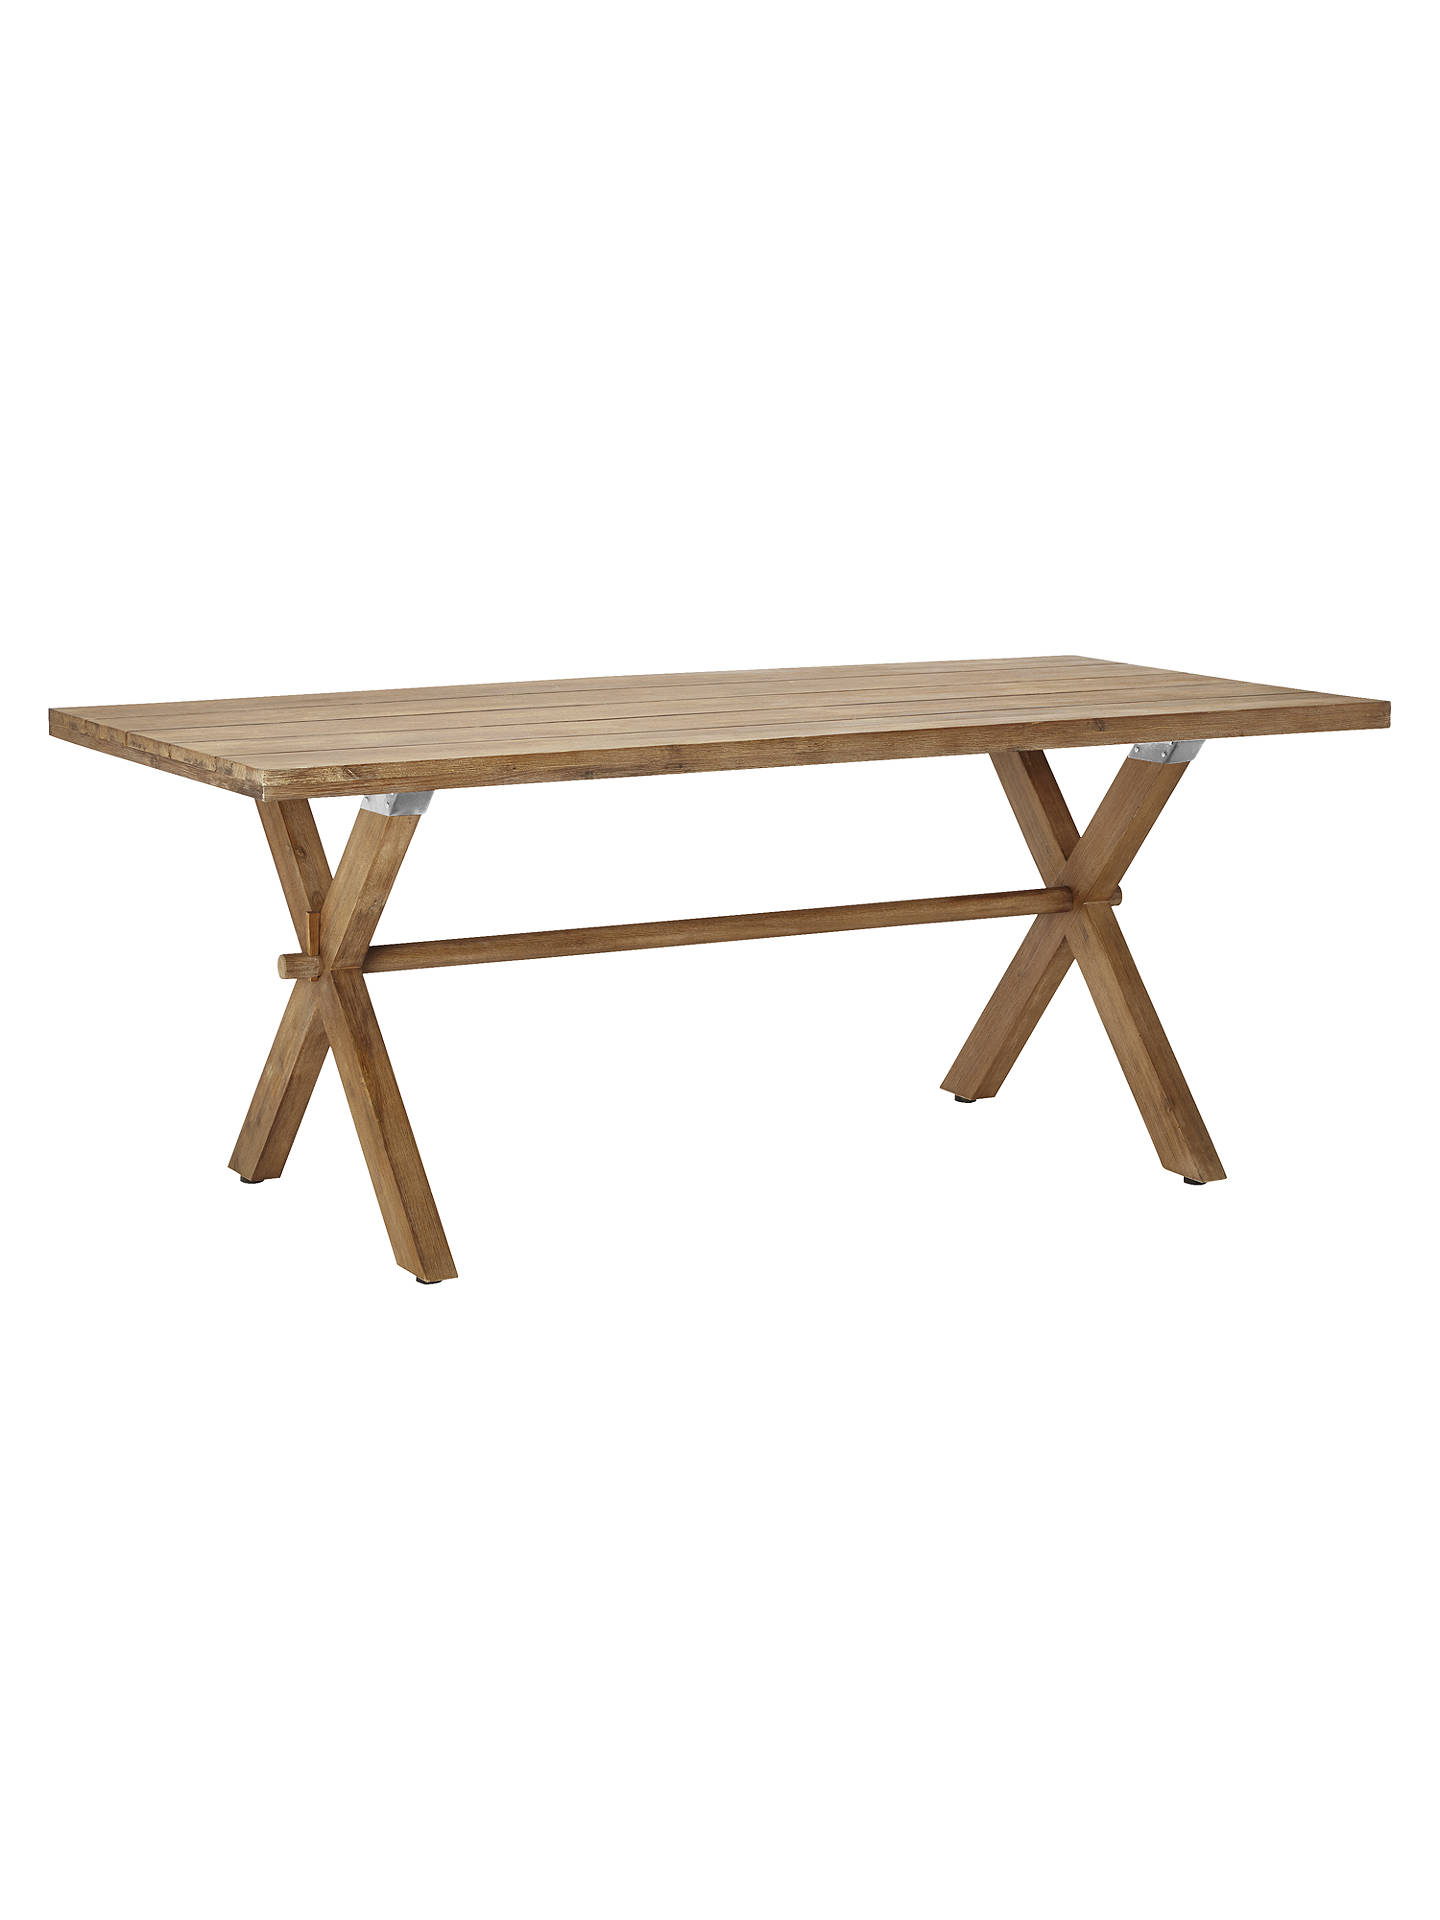 Buycroft collection islay 6 seater dining table fsc certified eucalyptus